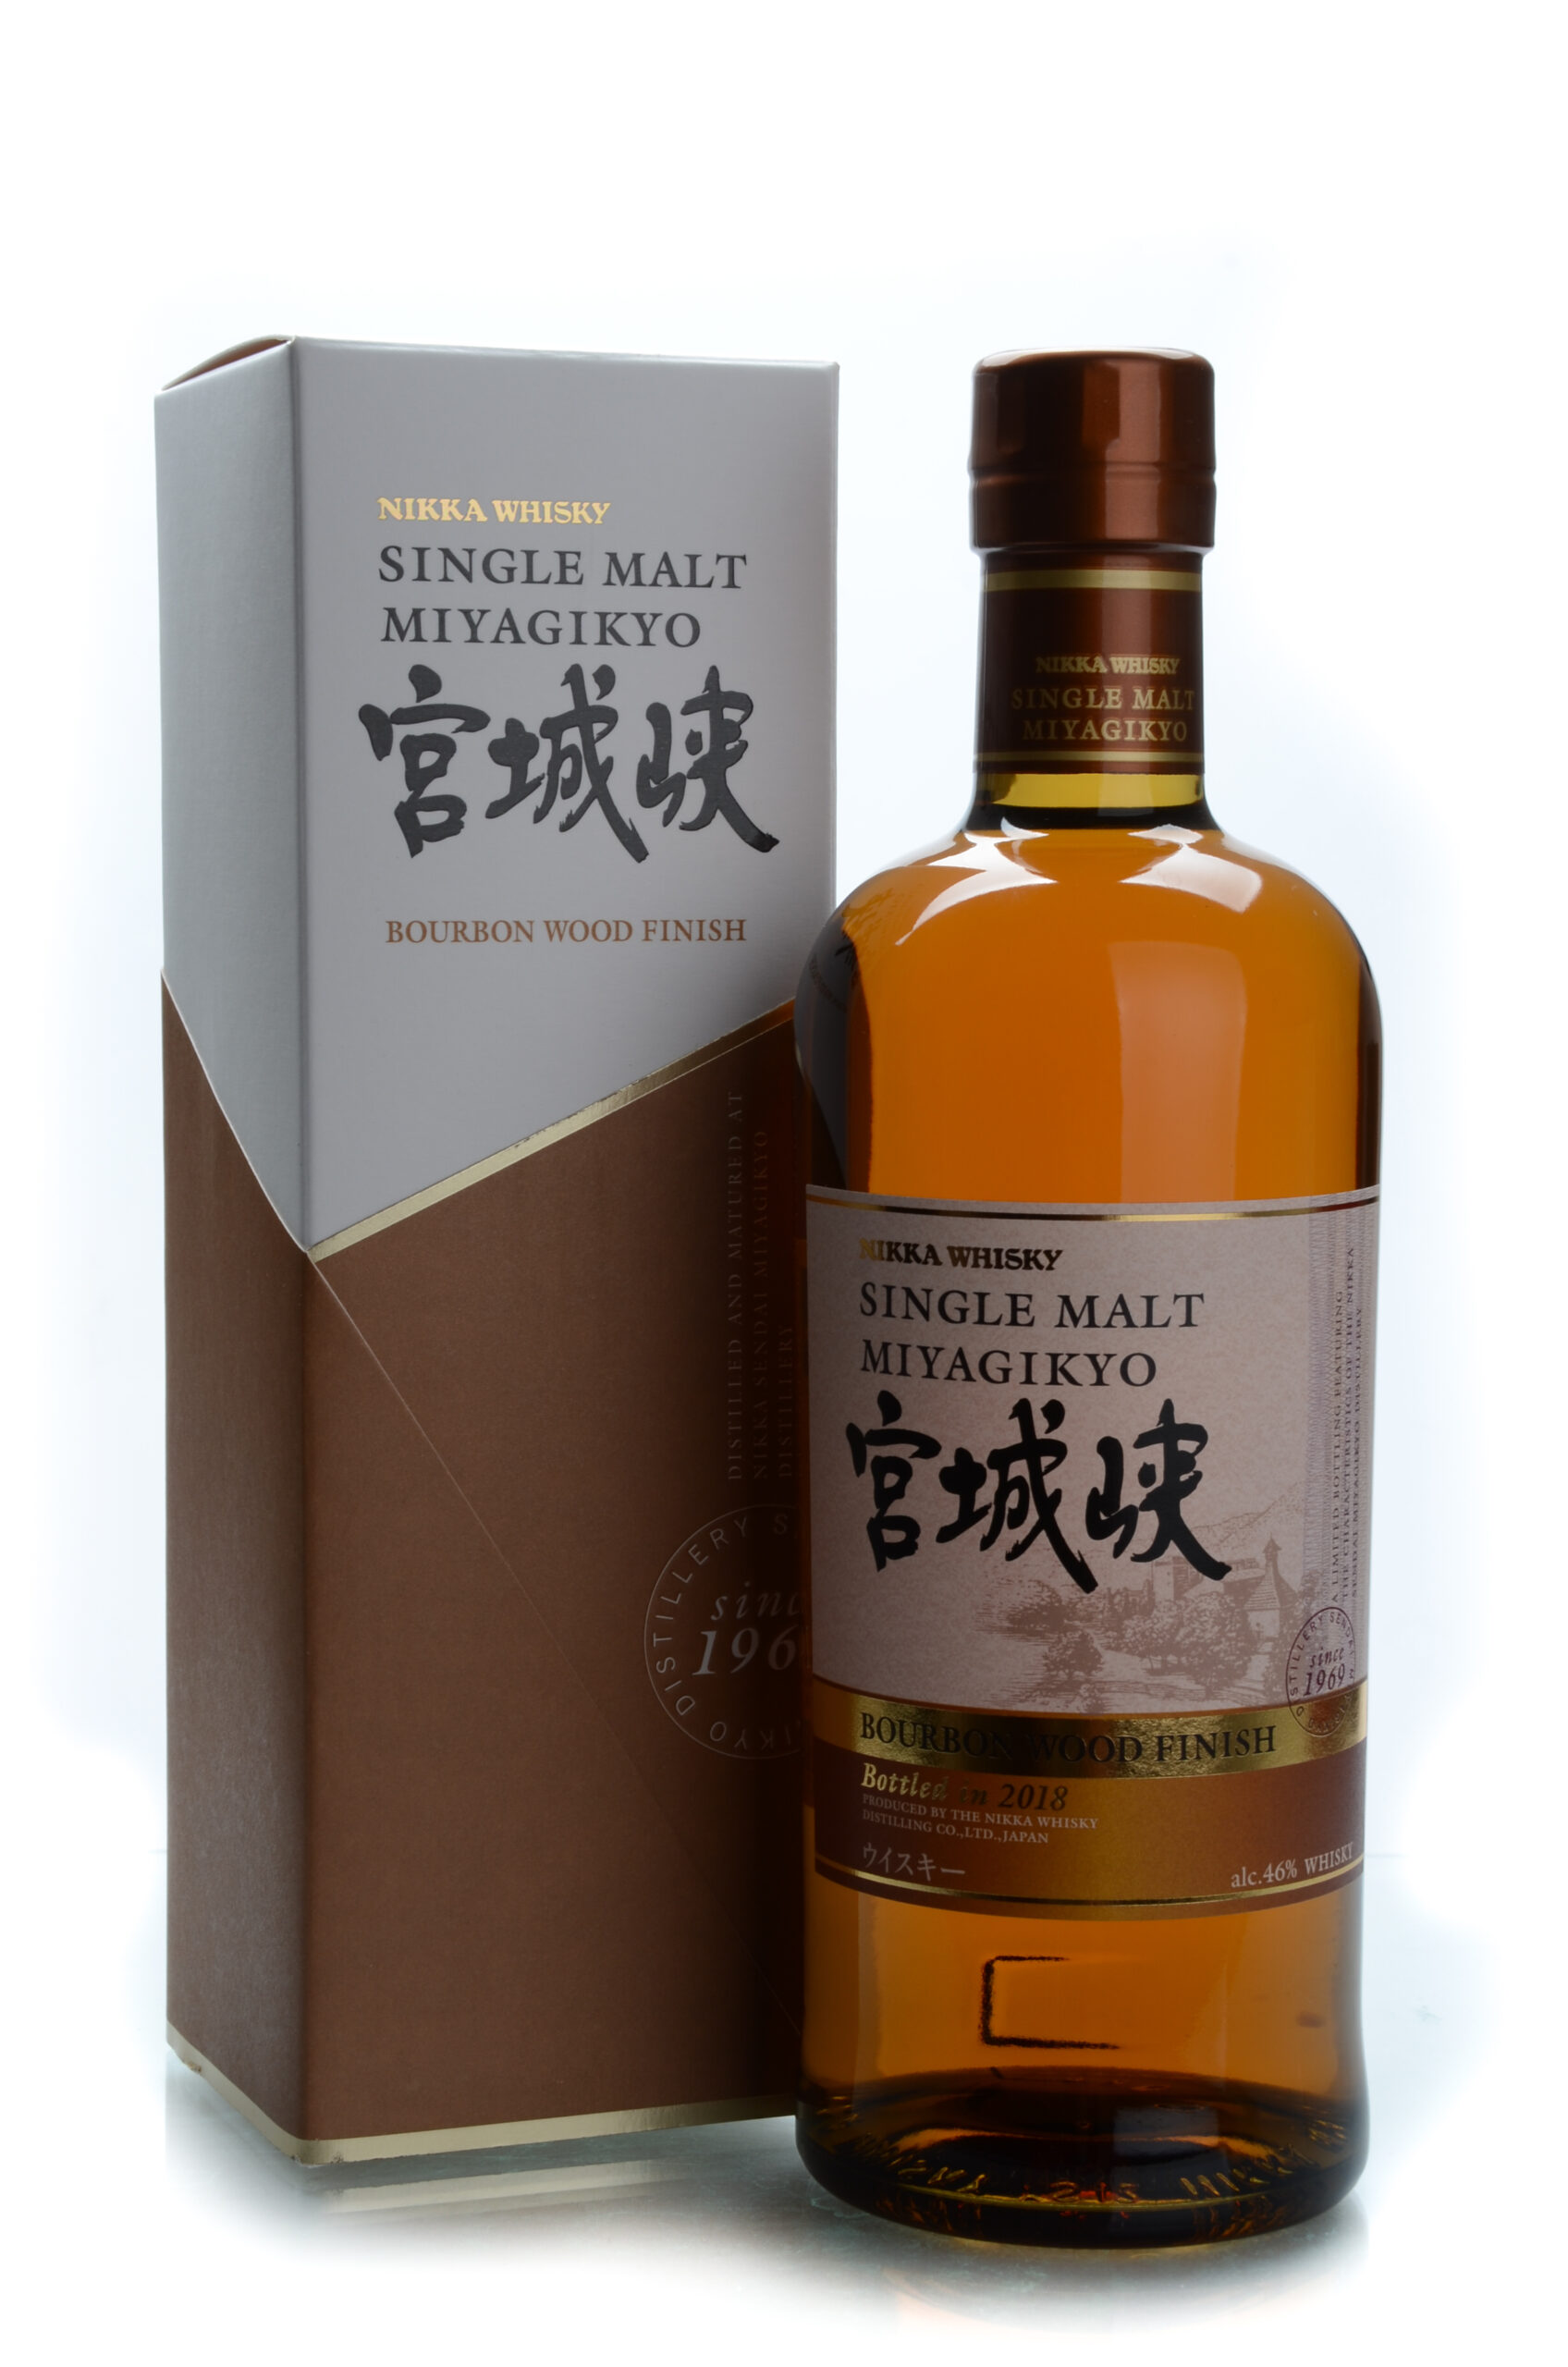 Nikka whiskey single malt Miyagikyo bourbon wood finish